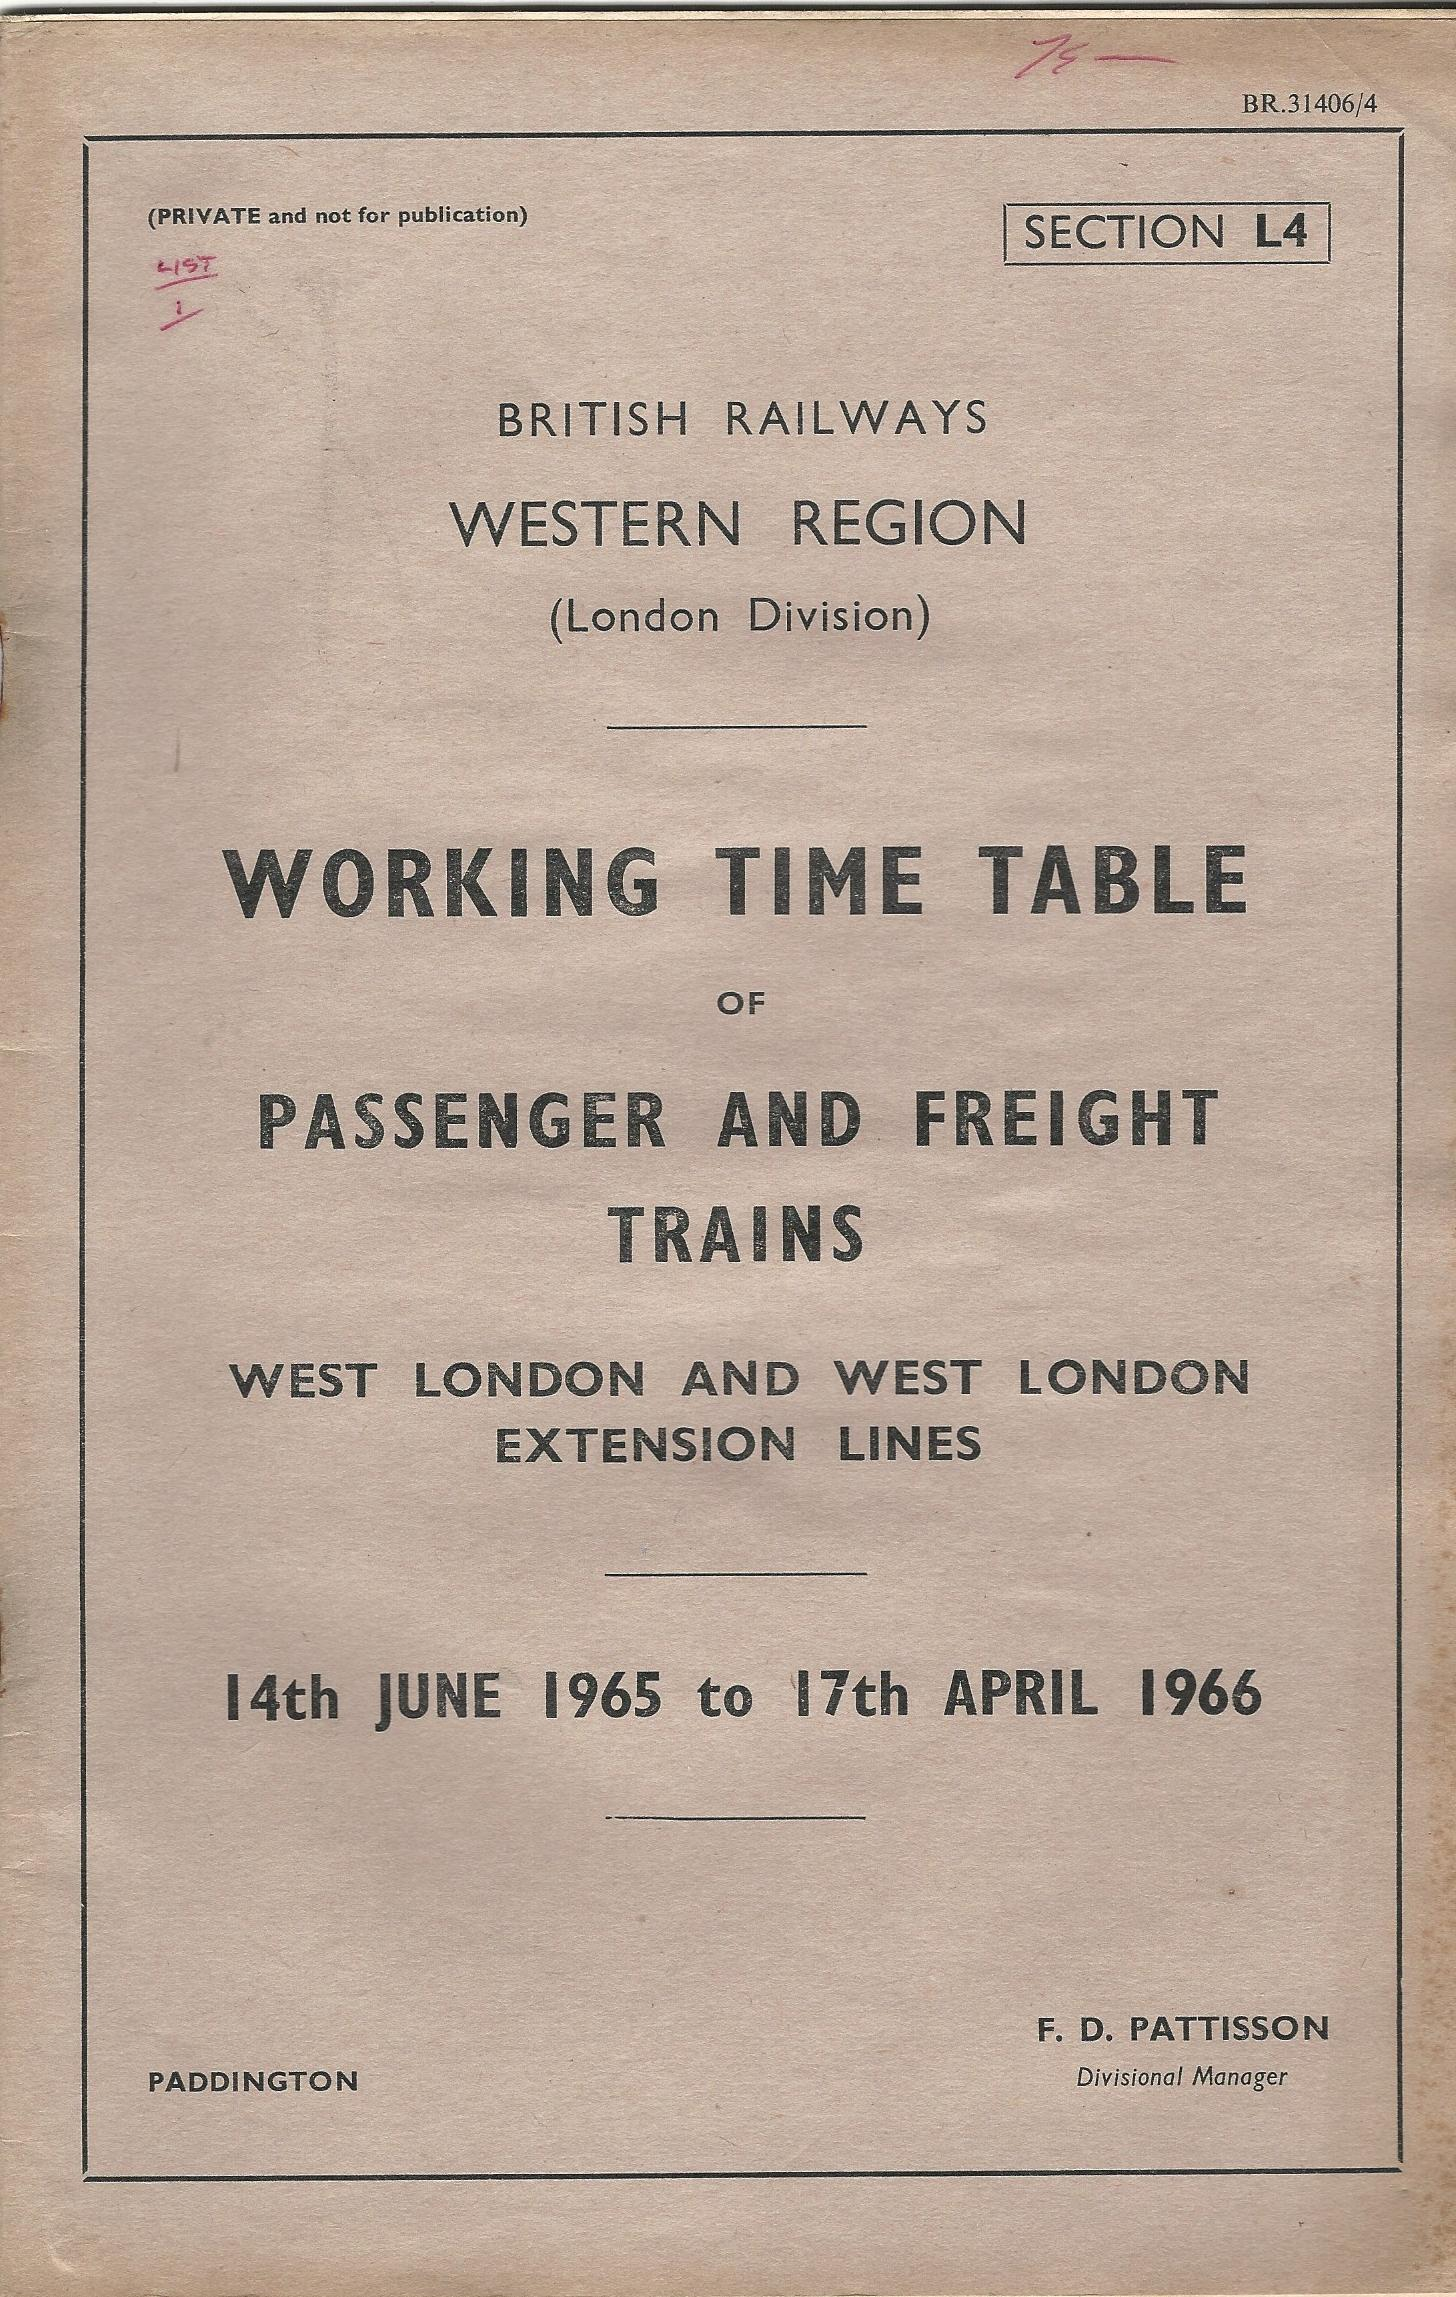 Image for British Railways Western Region: Working Time Table of Passenger and Freight Trains: West London and West London Extension Lines 14th June 1965 to 17th April 1966